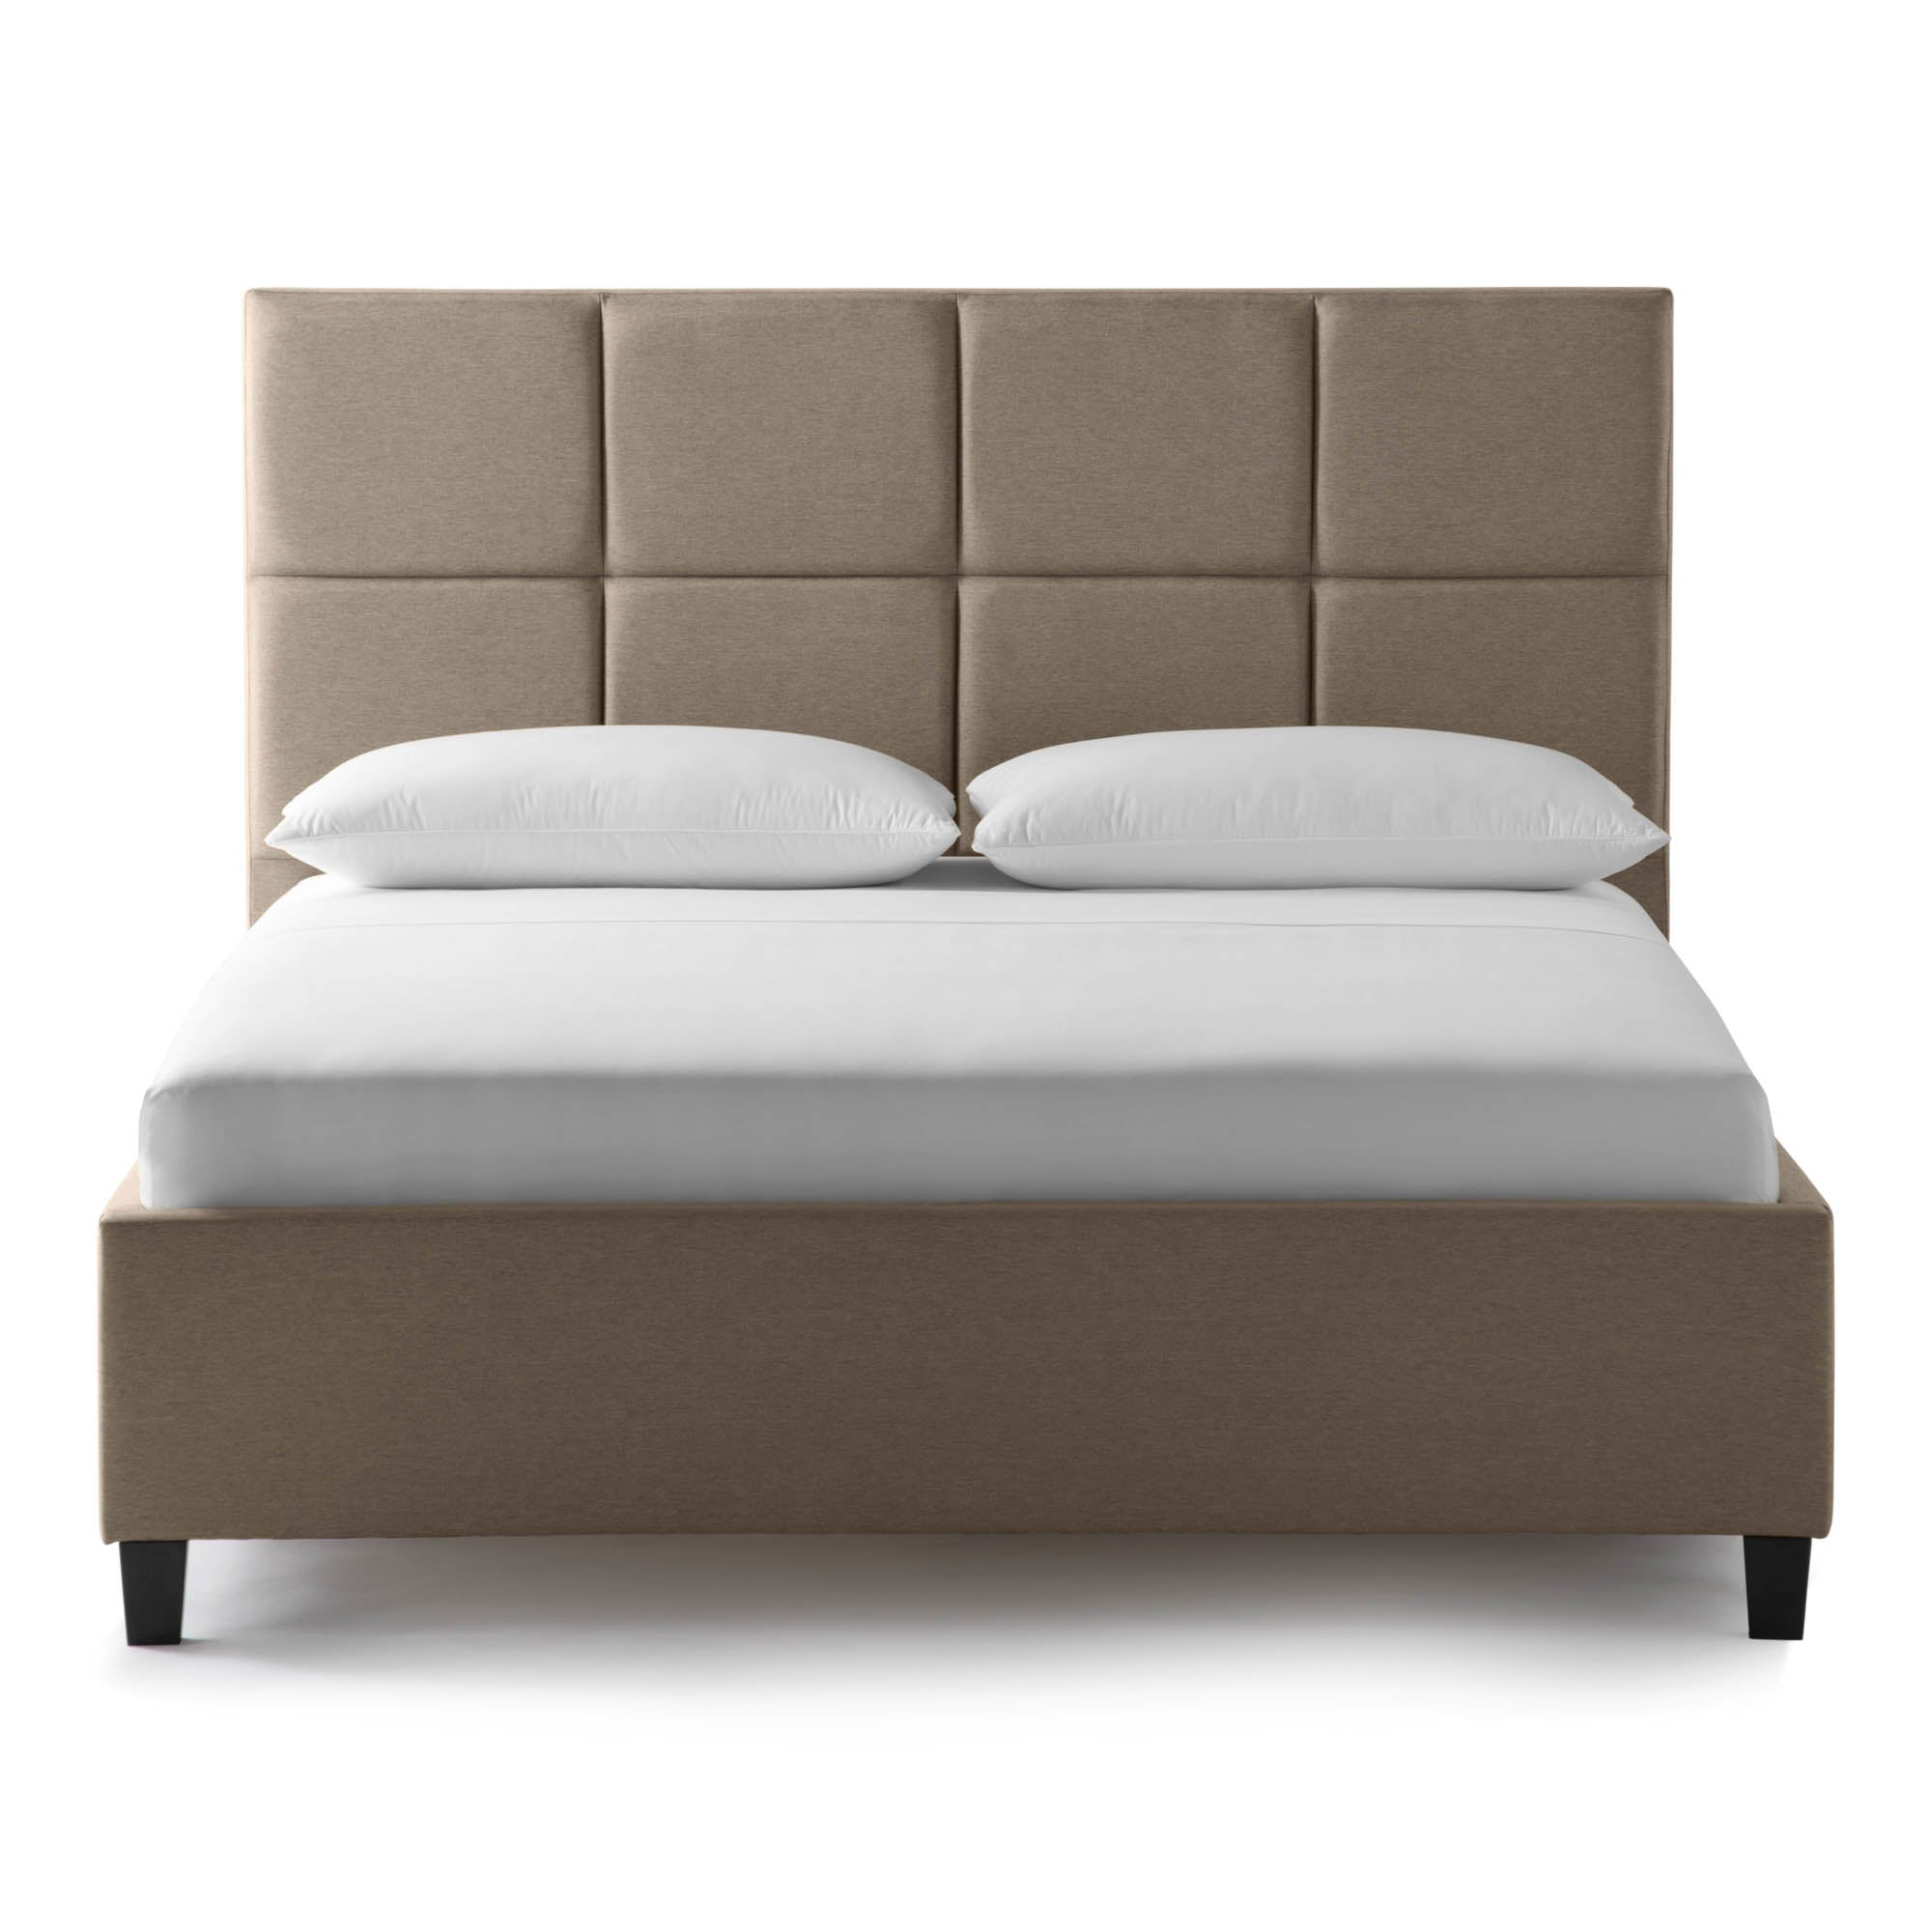 Yogasleep by Malouf Scoresby Designer Bed Desert - Yogasleep by Malouf